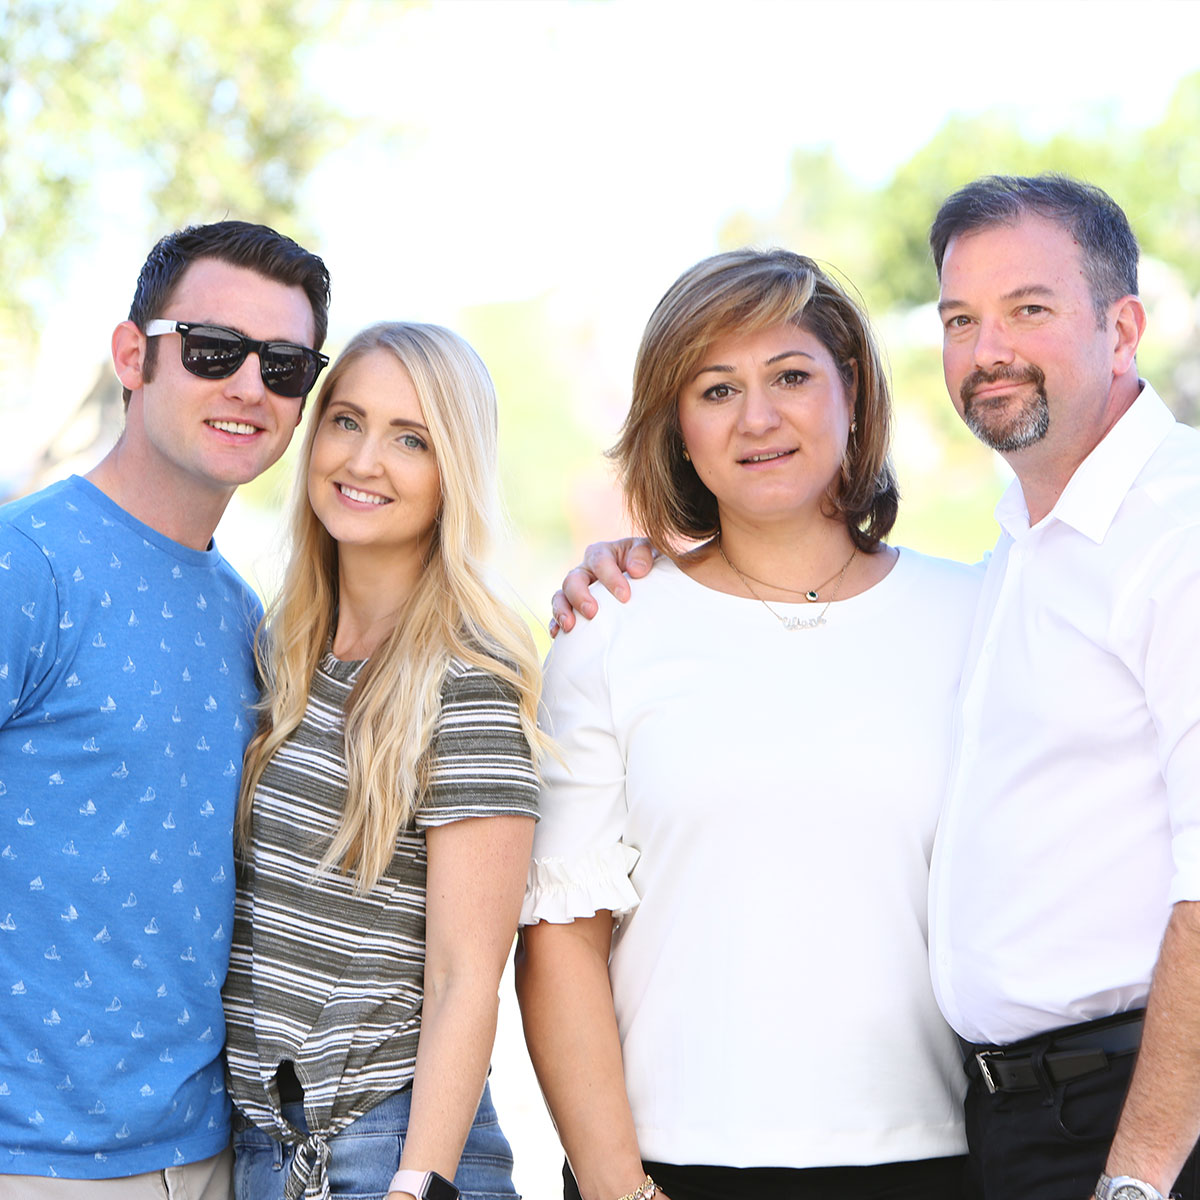 Johnny + Chelsea Stitt & David + Lillian Culley    Family Group    EVERY OTHER MONDAY • 6:30PM • SAN MARCOS   We are a family group that meets together to grow in the study of God's Word, fellowship and community.